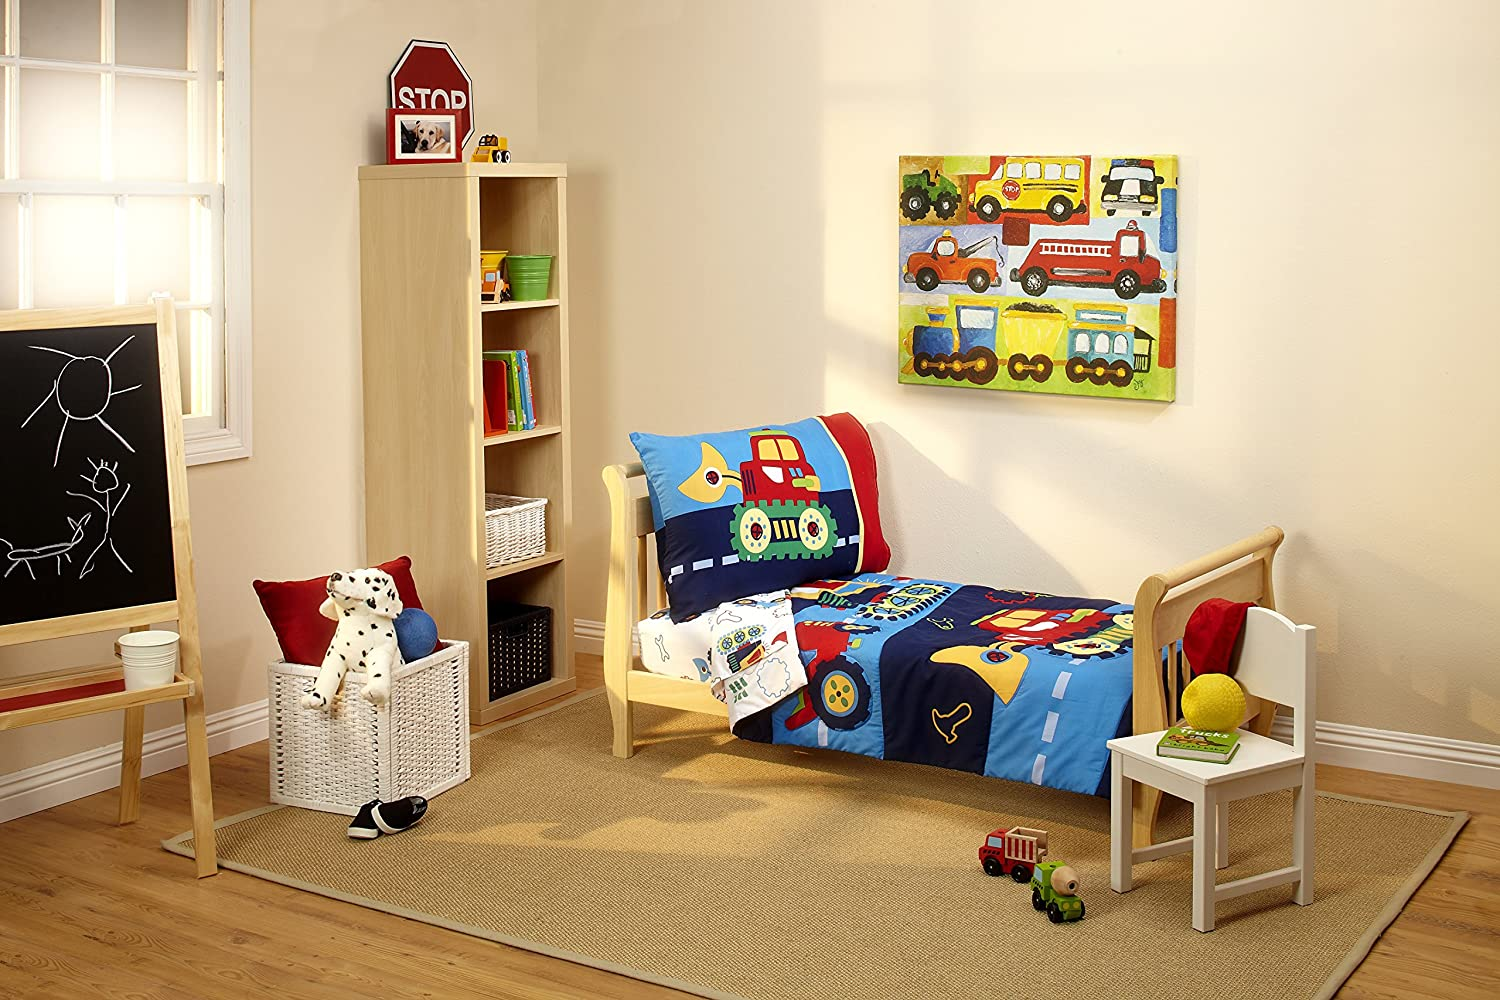 Etonnant Amazon.com : Everything Kids Toddler Bedding Set, Under Construction : Baby